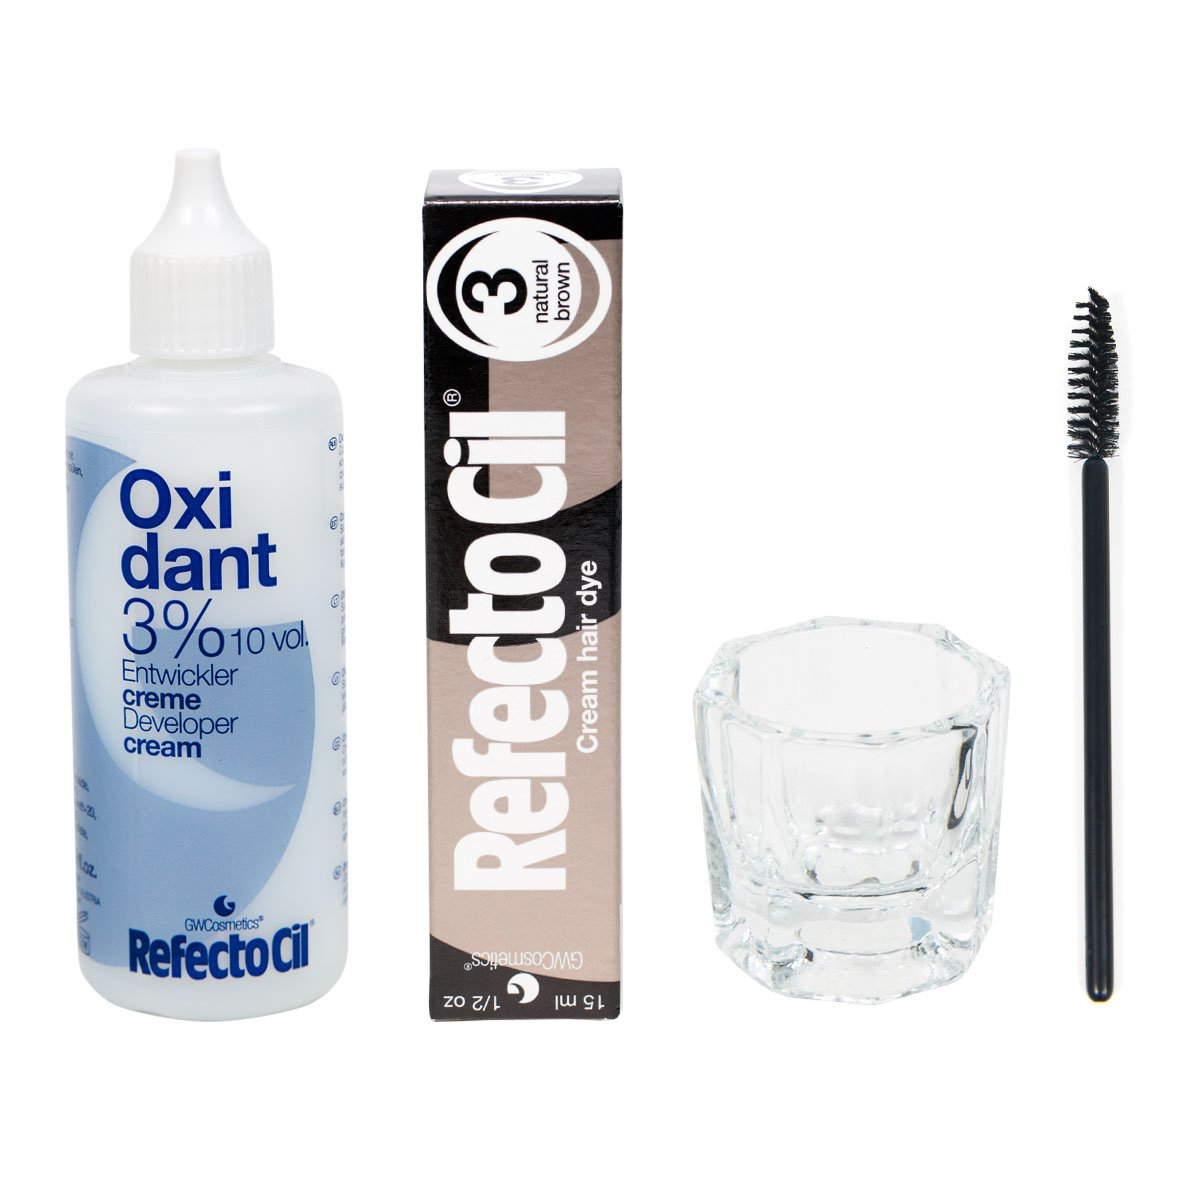 Refectocil KIT - Natural Brown Cream Hair Dye + Creme Oxidant 3% 3.4oz + Mixing Dish + Mascara Brush by RefectoCil